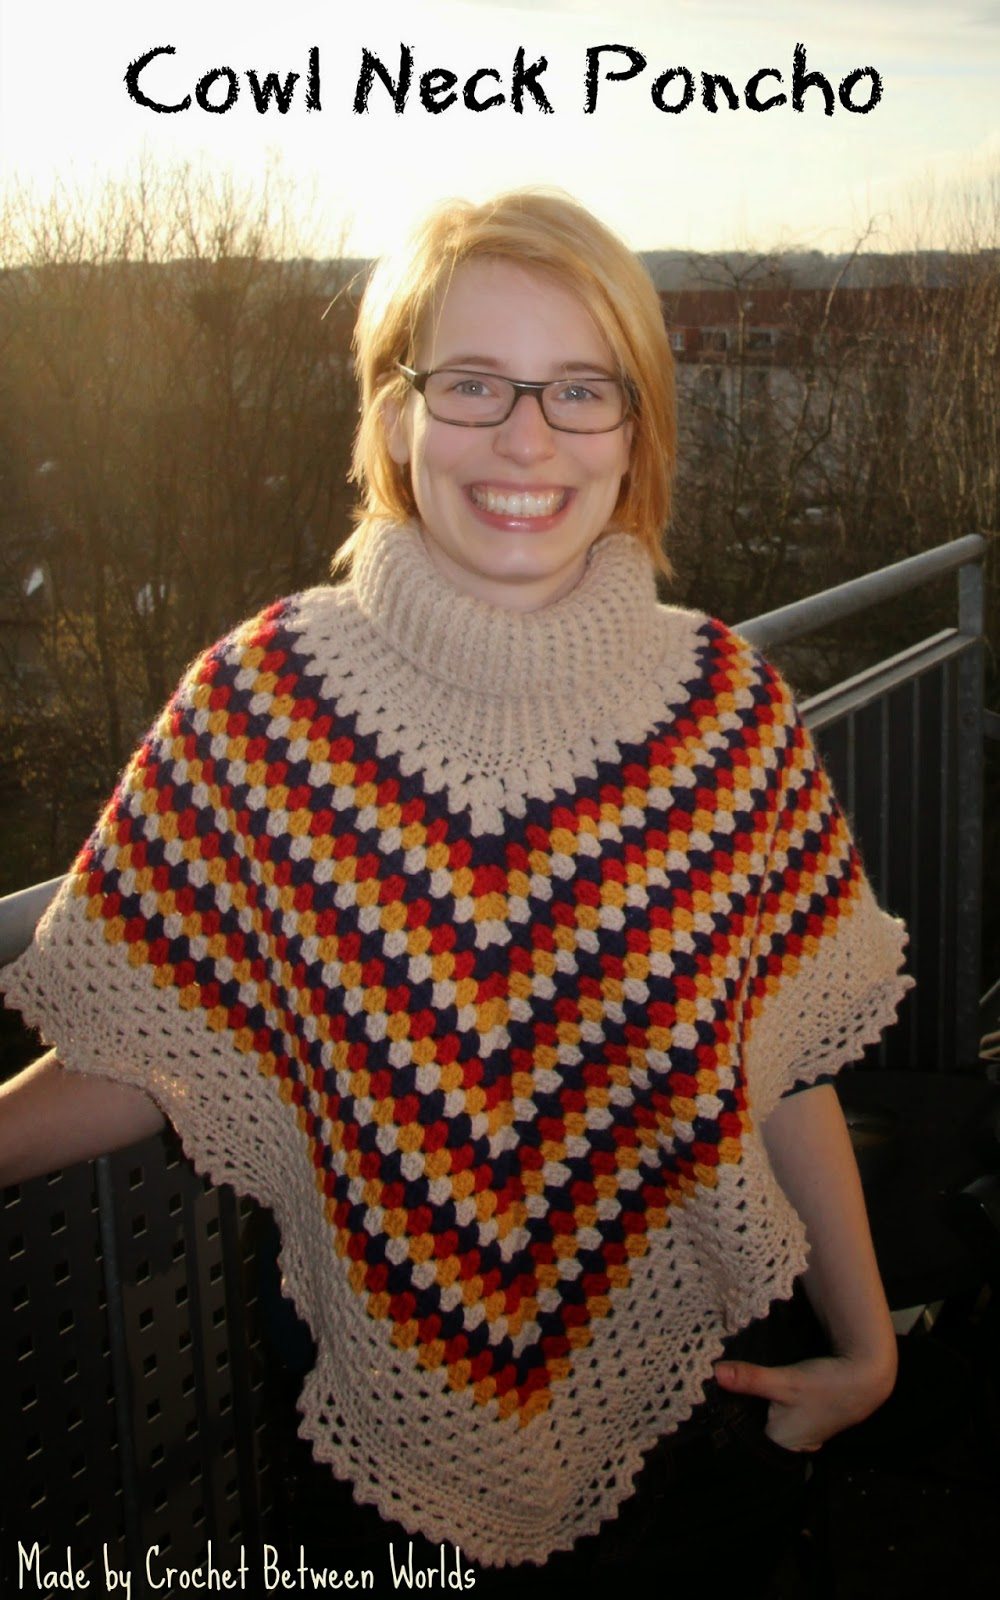 Crochet between worlds: Cowl Neck Poncho Love!